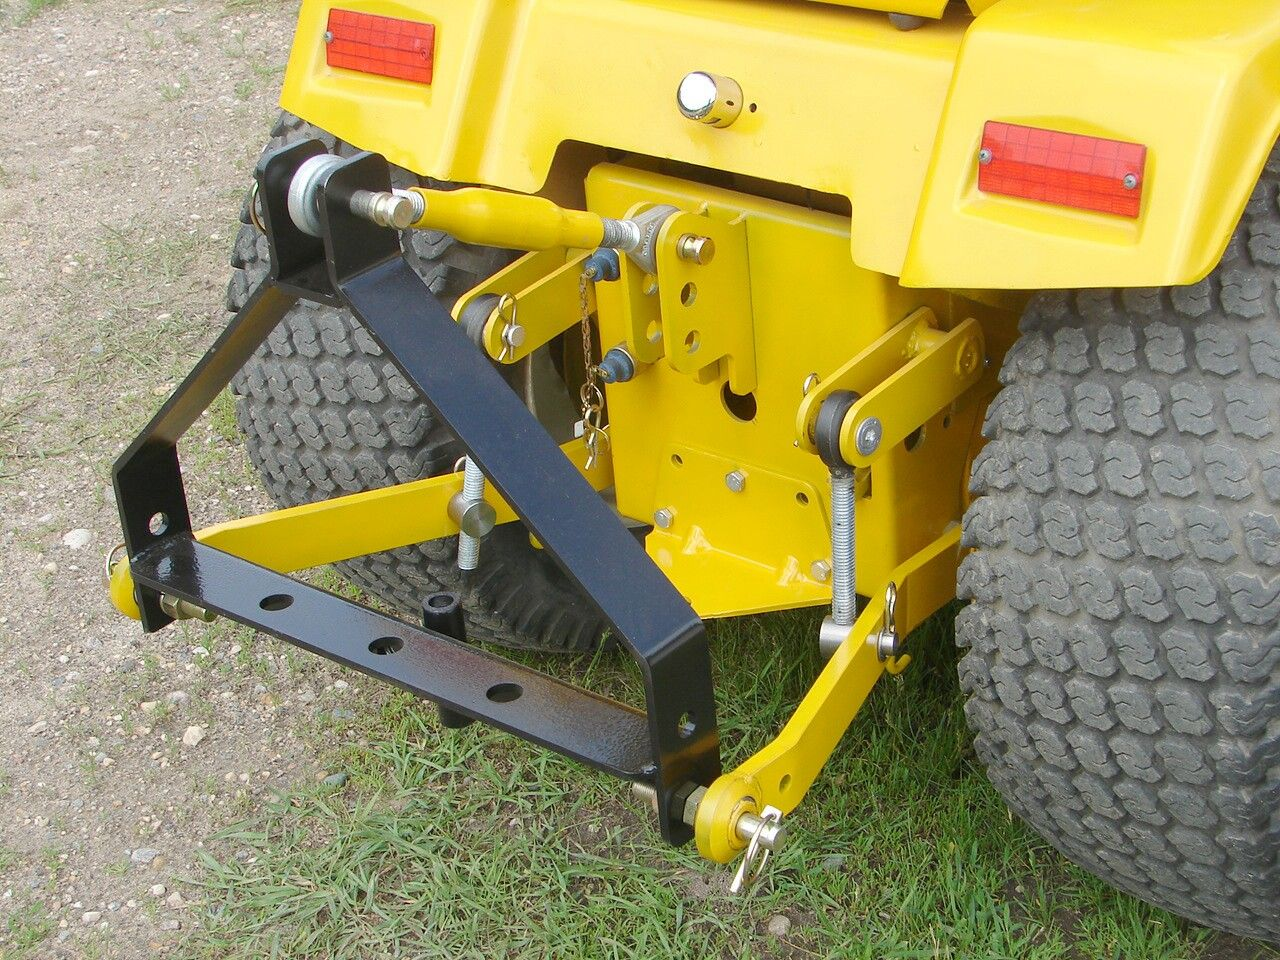 Cub cadet garden tractor attachments fasci garden for Lawn and garden implements